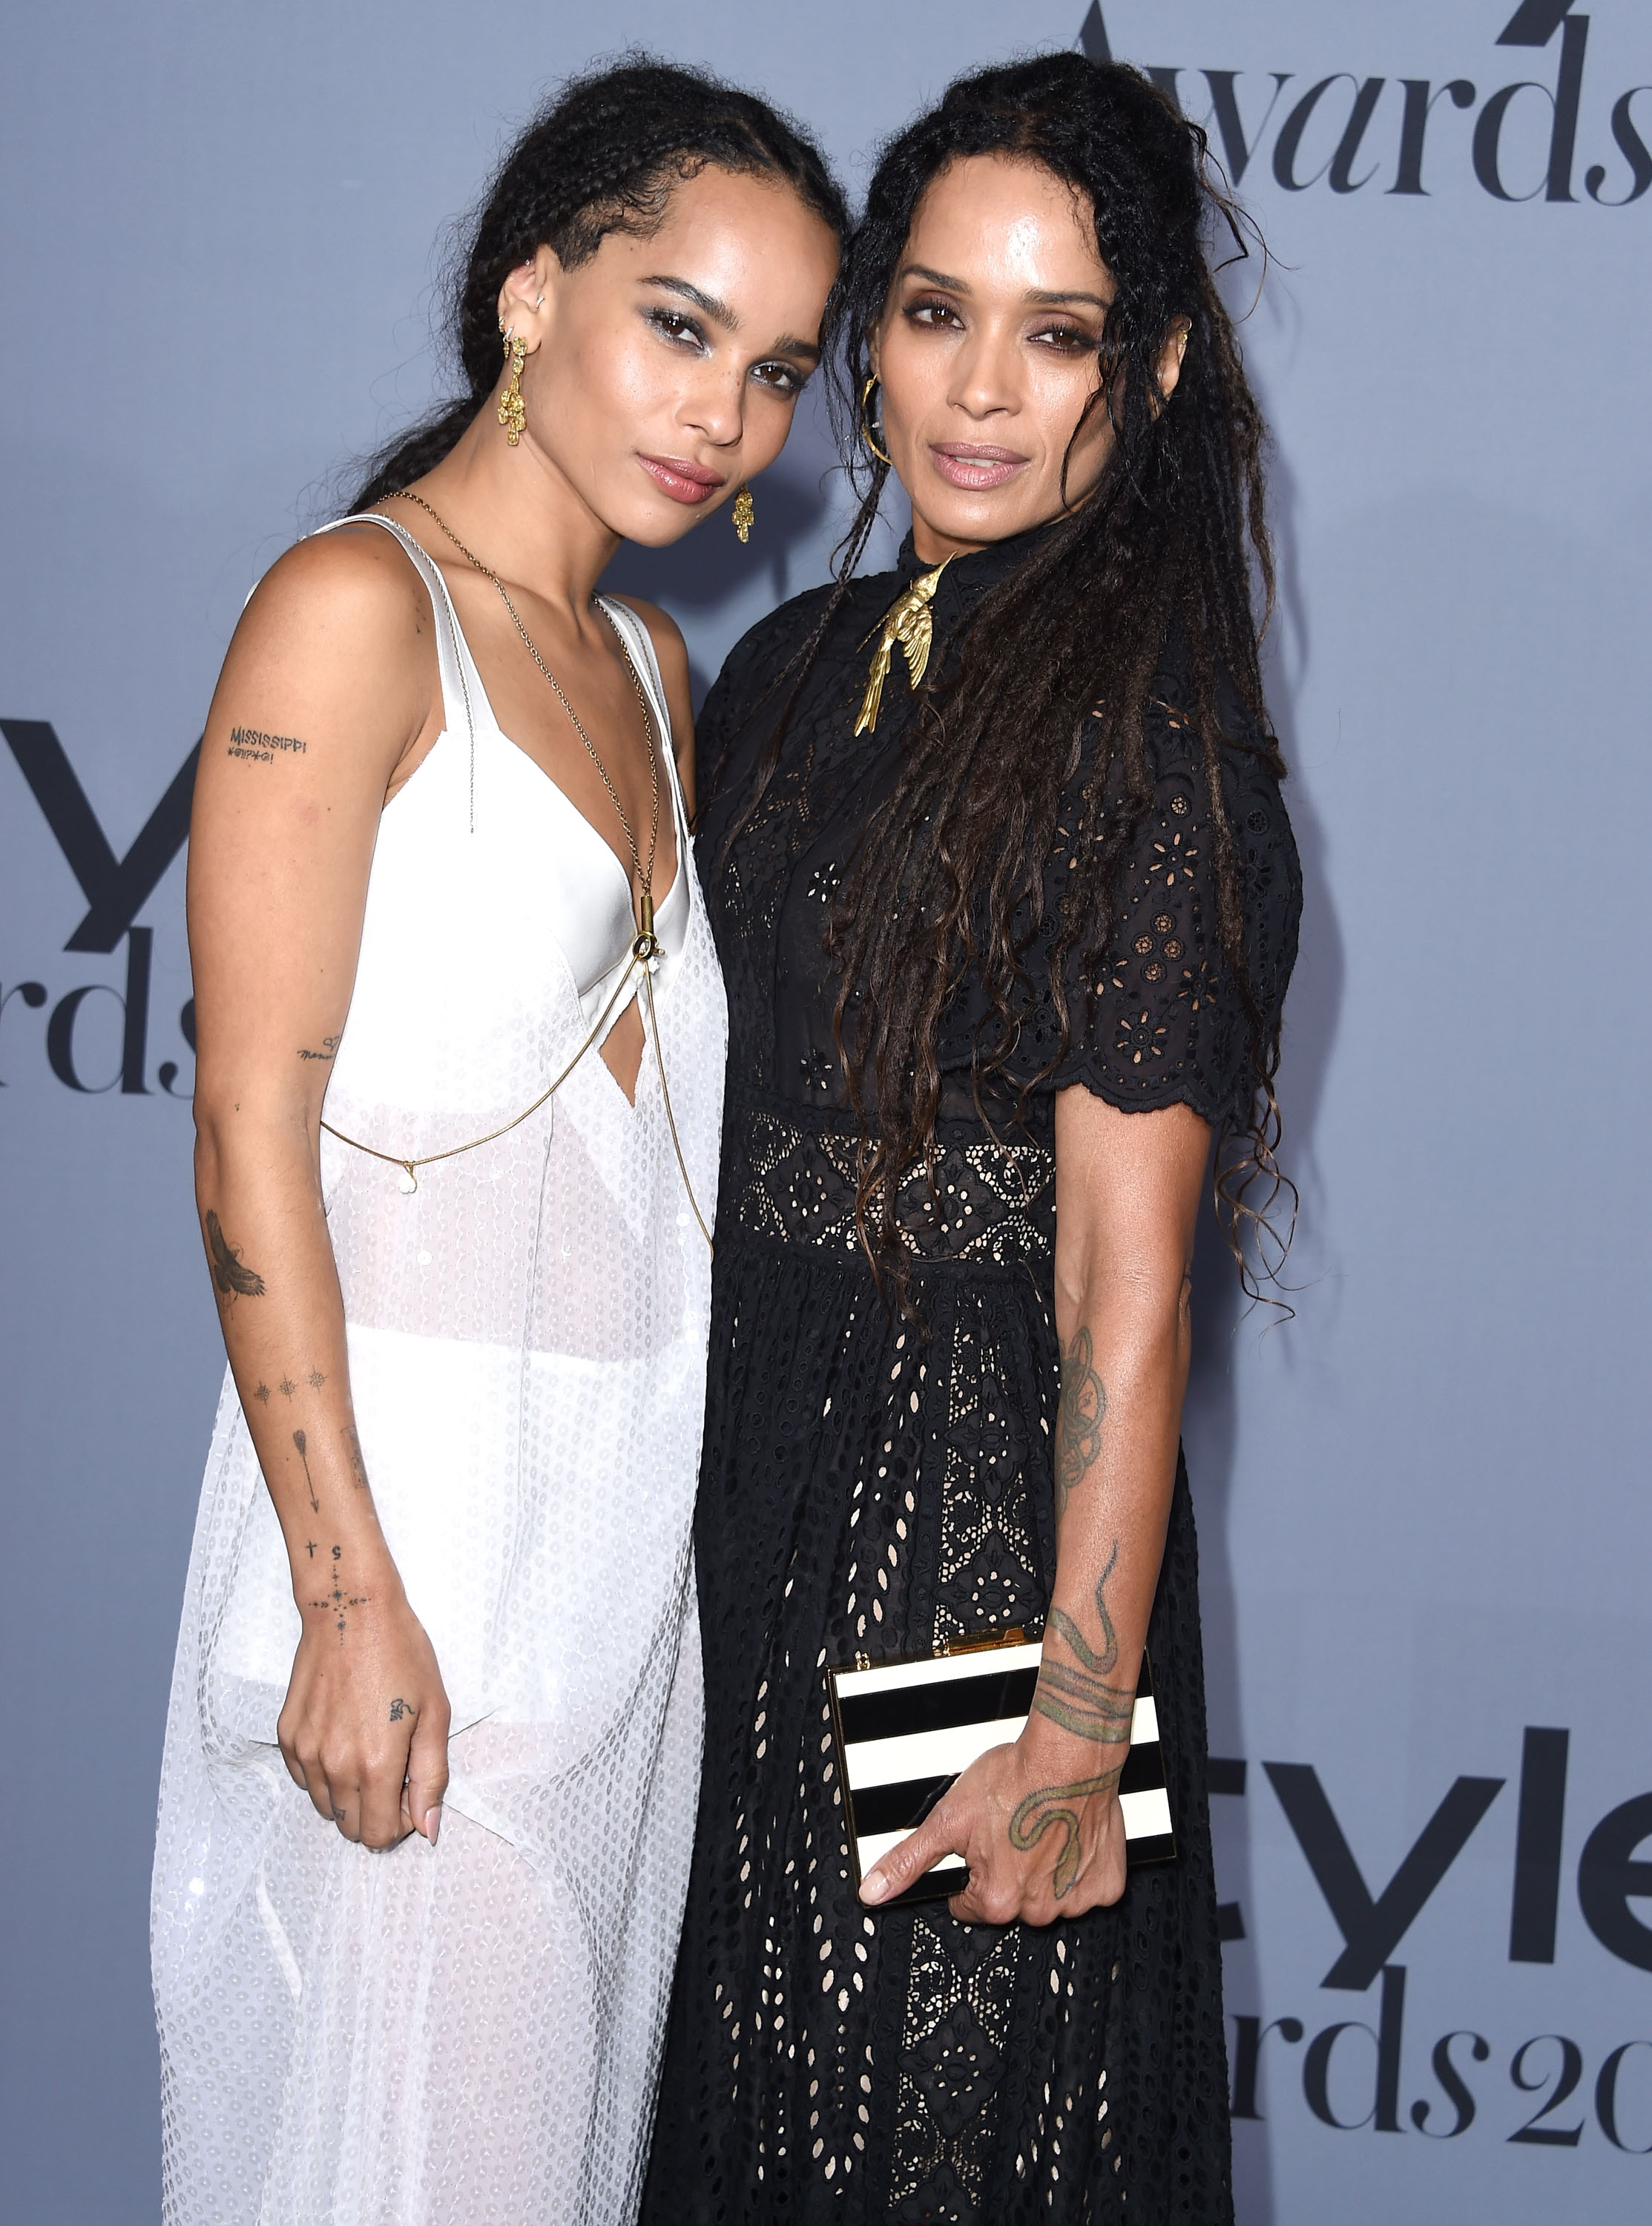 Zoe Kravitz and Lisa Bonet arrives at the InStyle Awards at Getty Center on October 26, 2015. (Photo by Steve Granitz/WireImage)